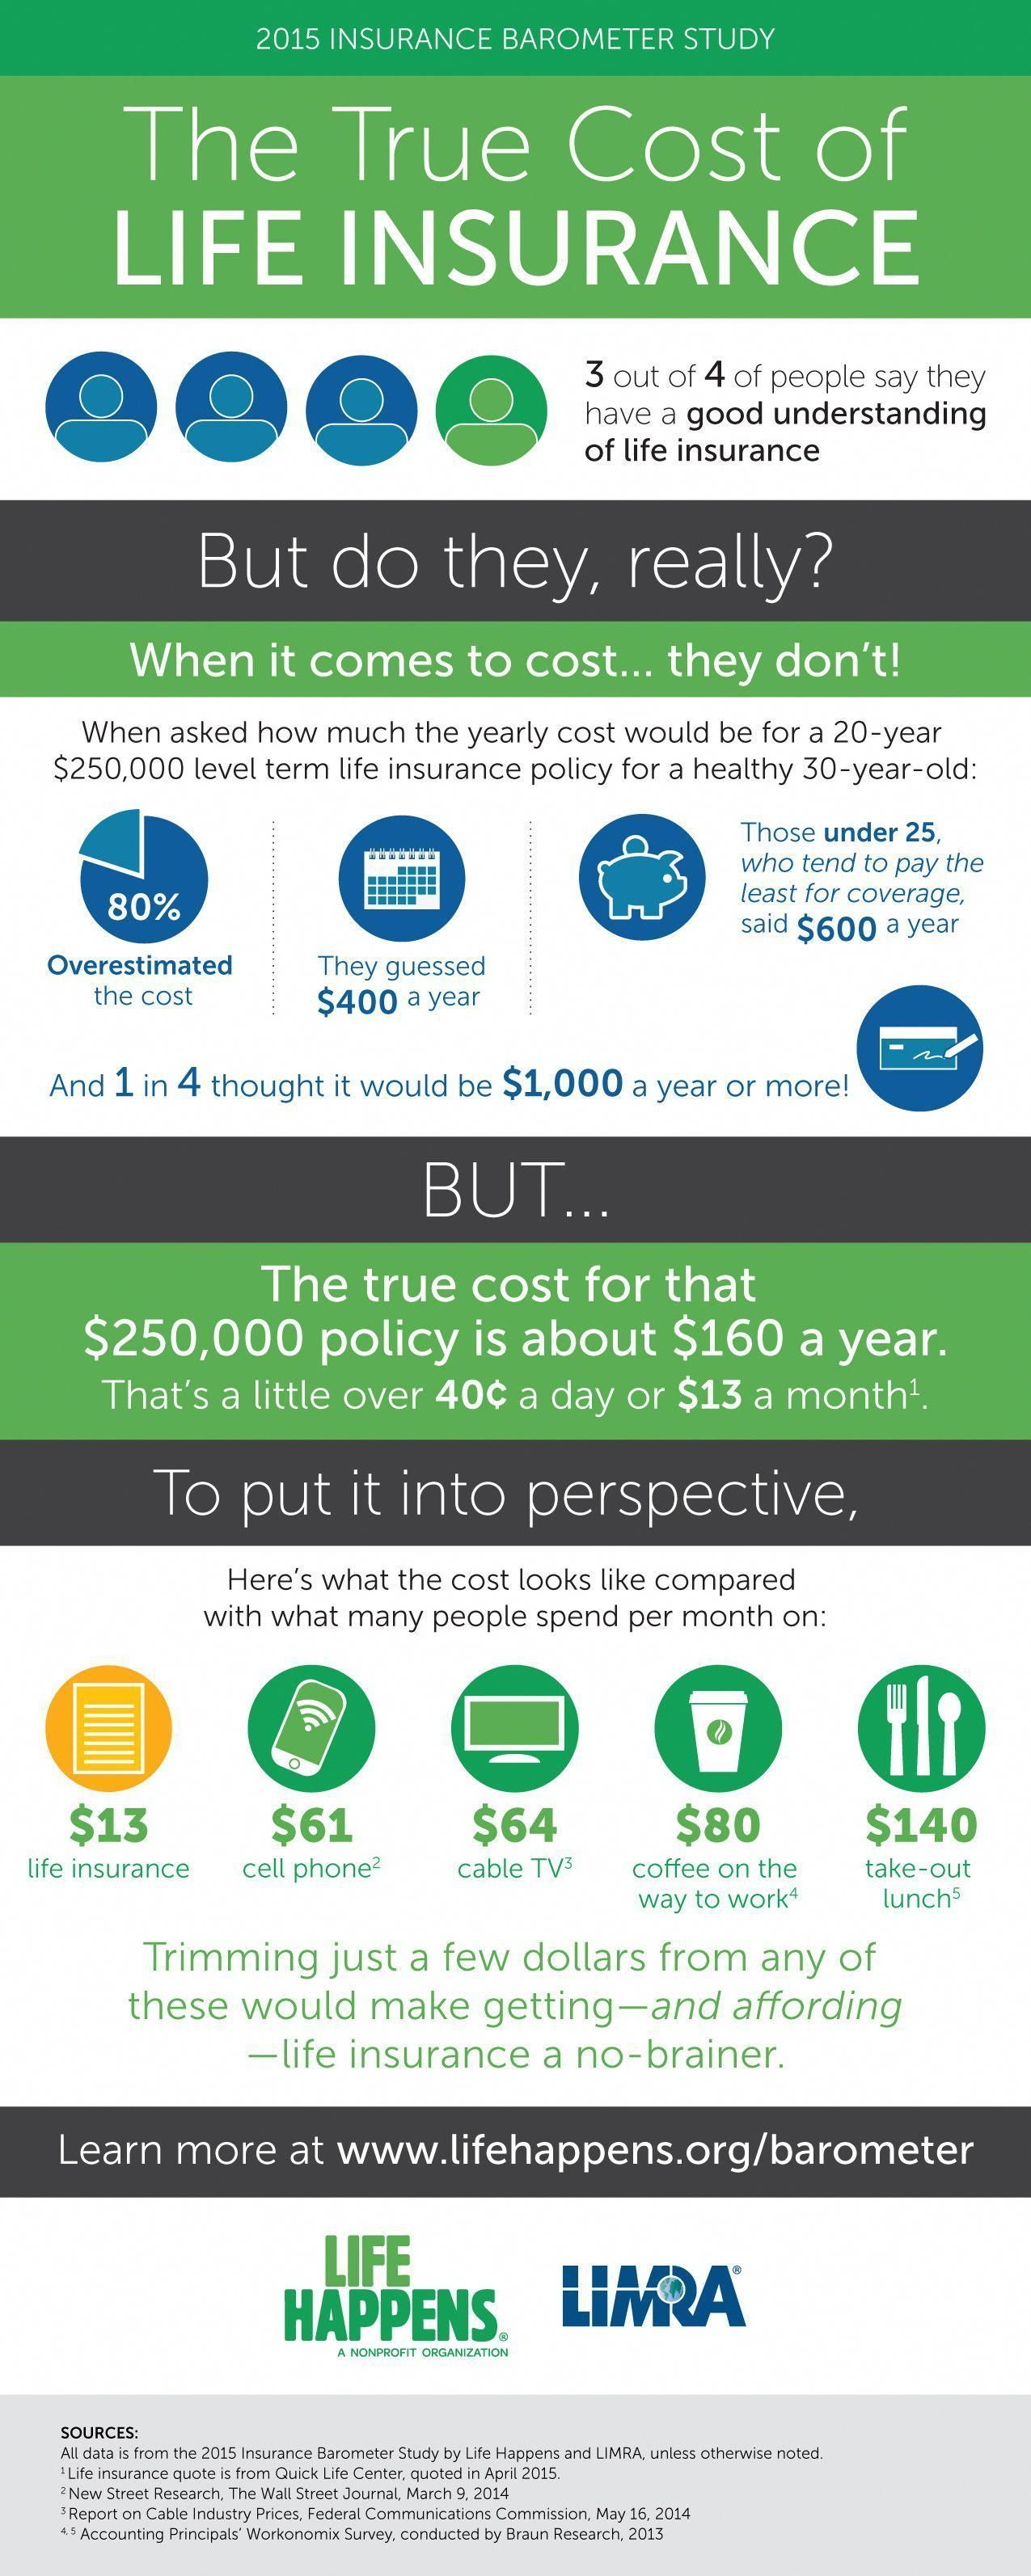 Good Photographs What Does Life Insurance Really Cost For The